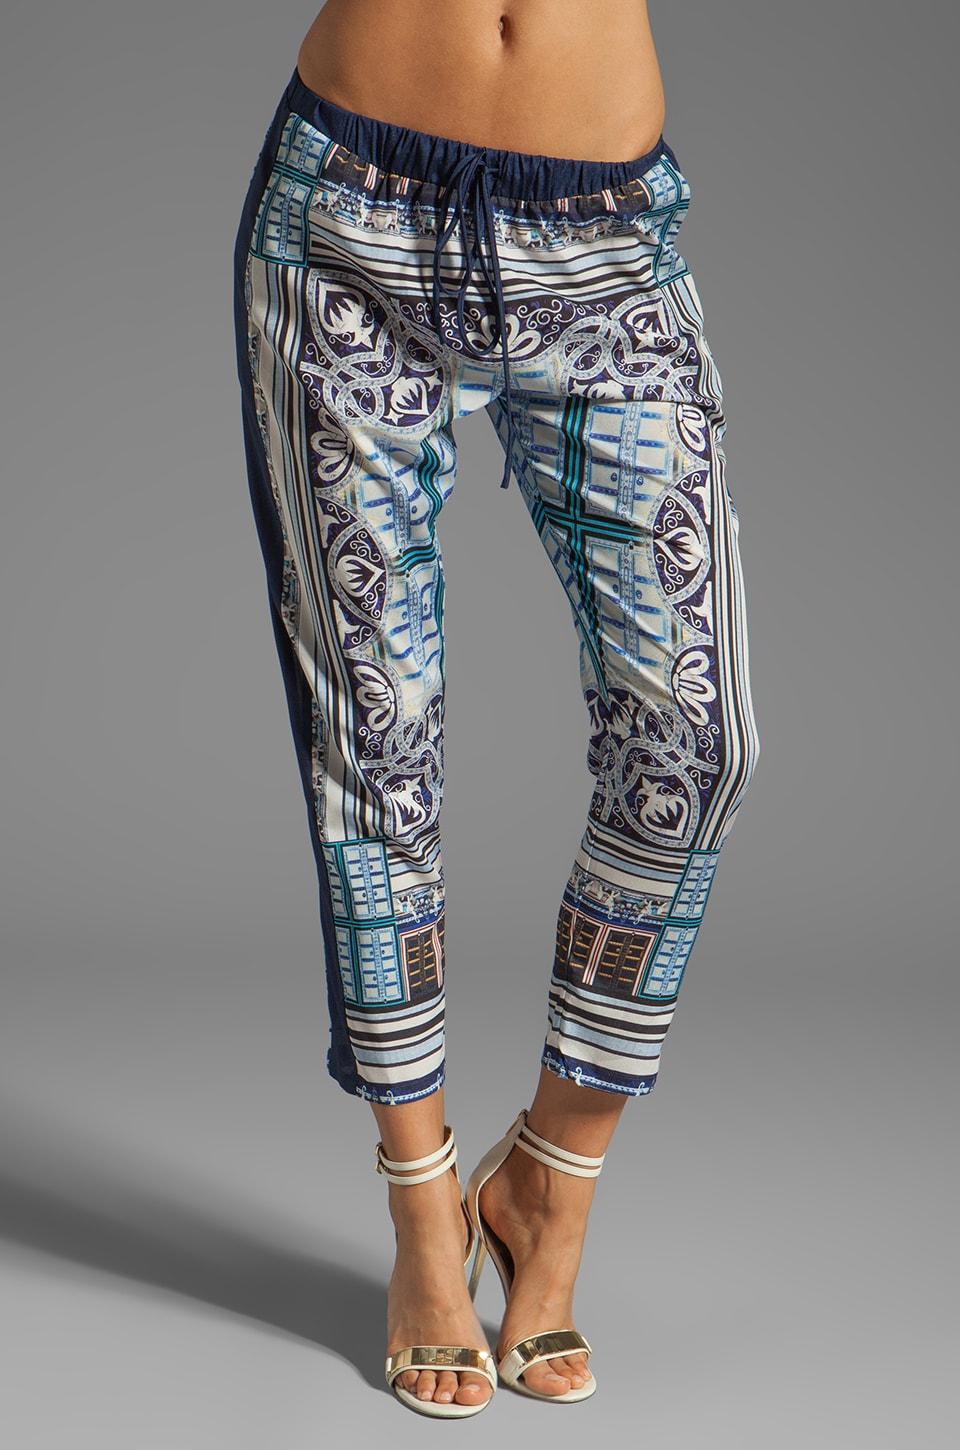 Clover Canyon Ornate Filagree Pant in Multi